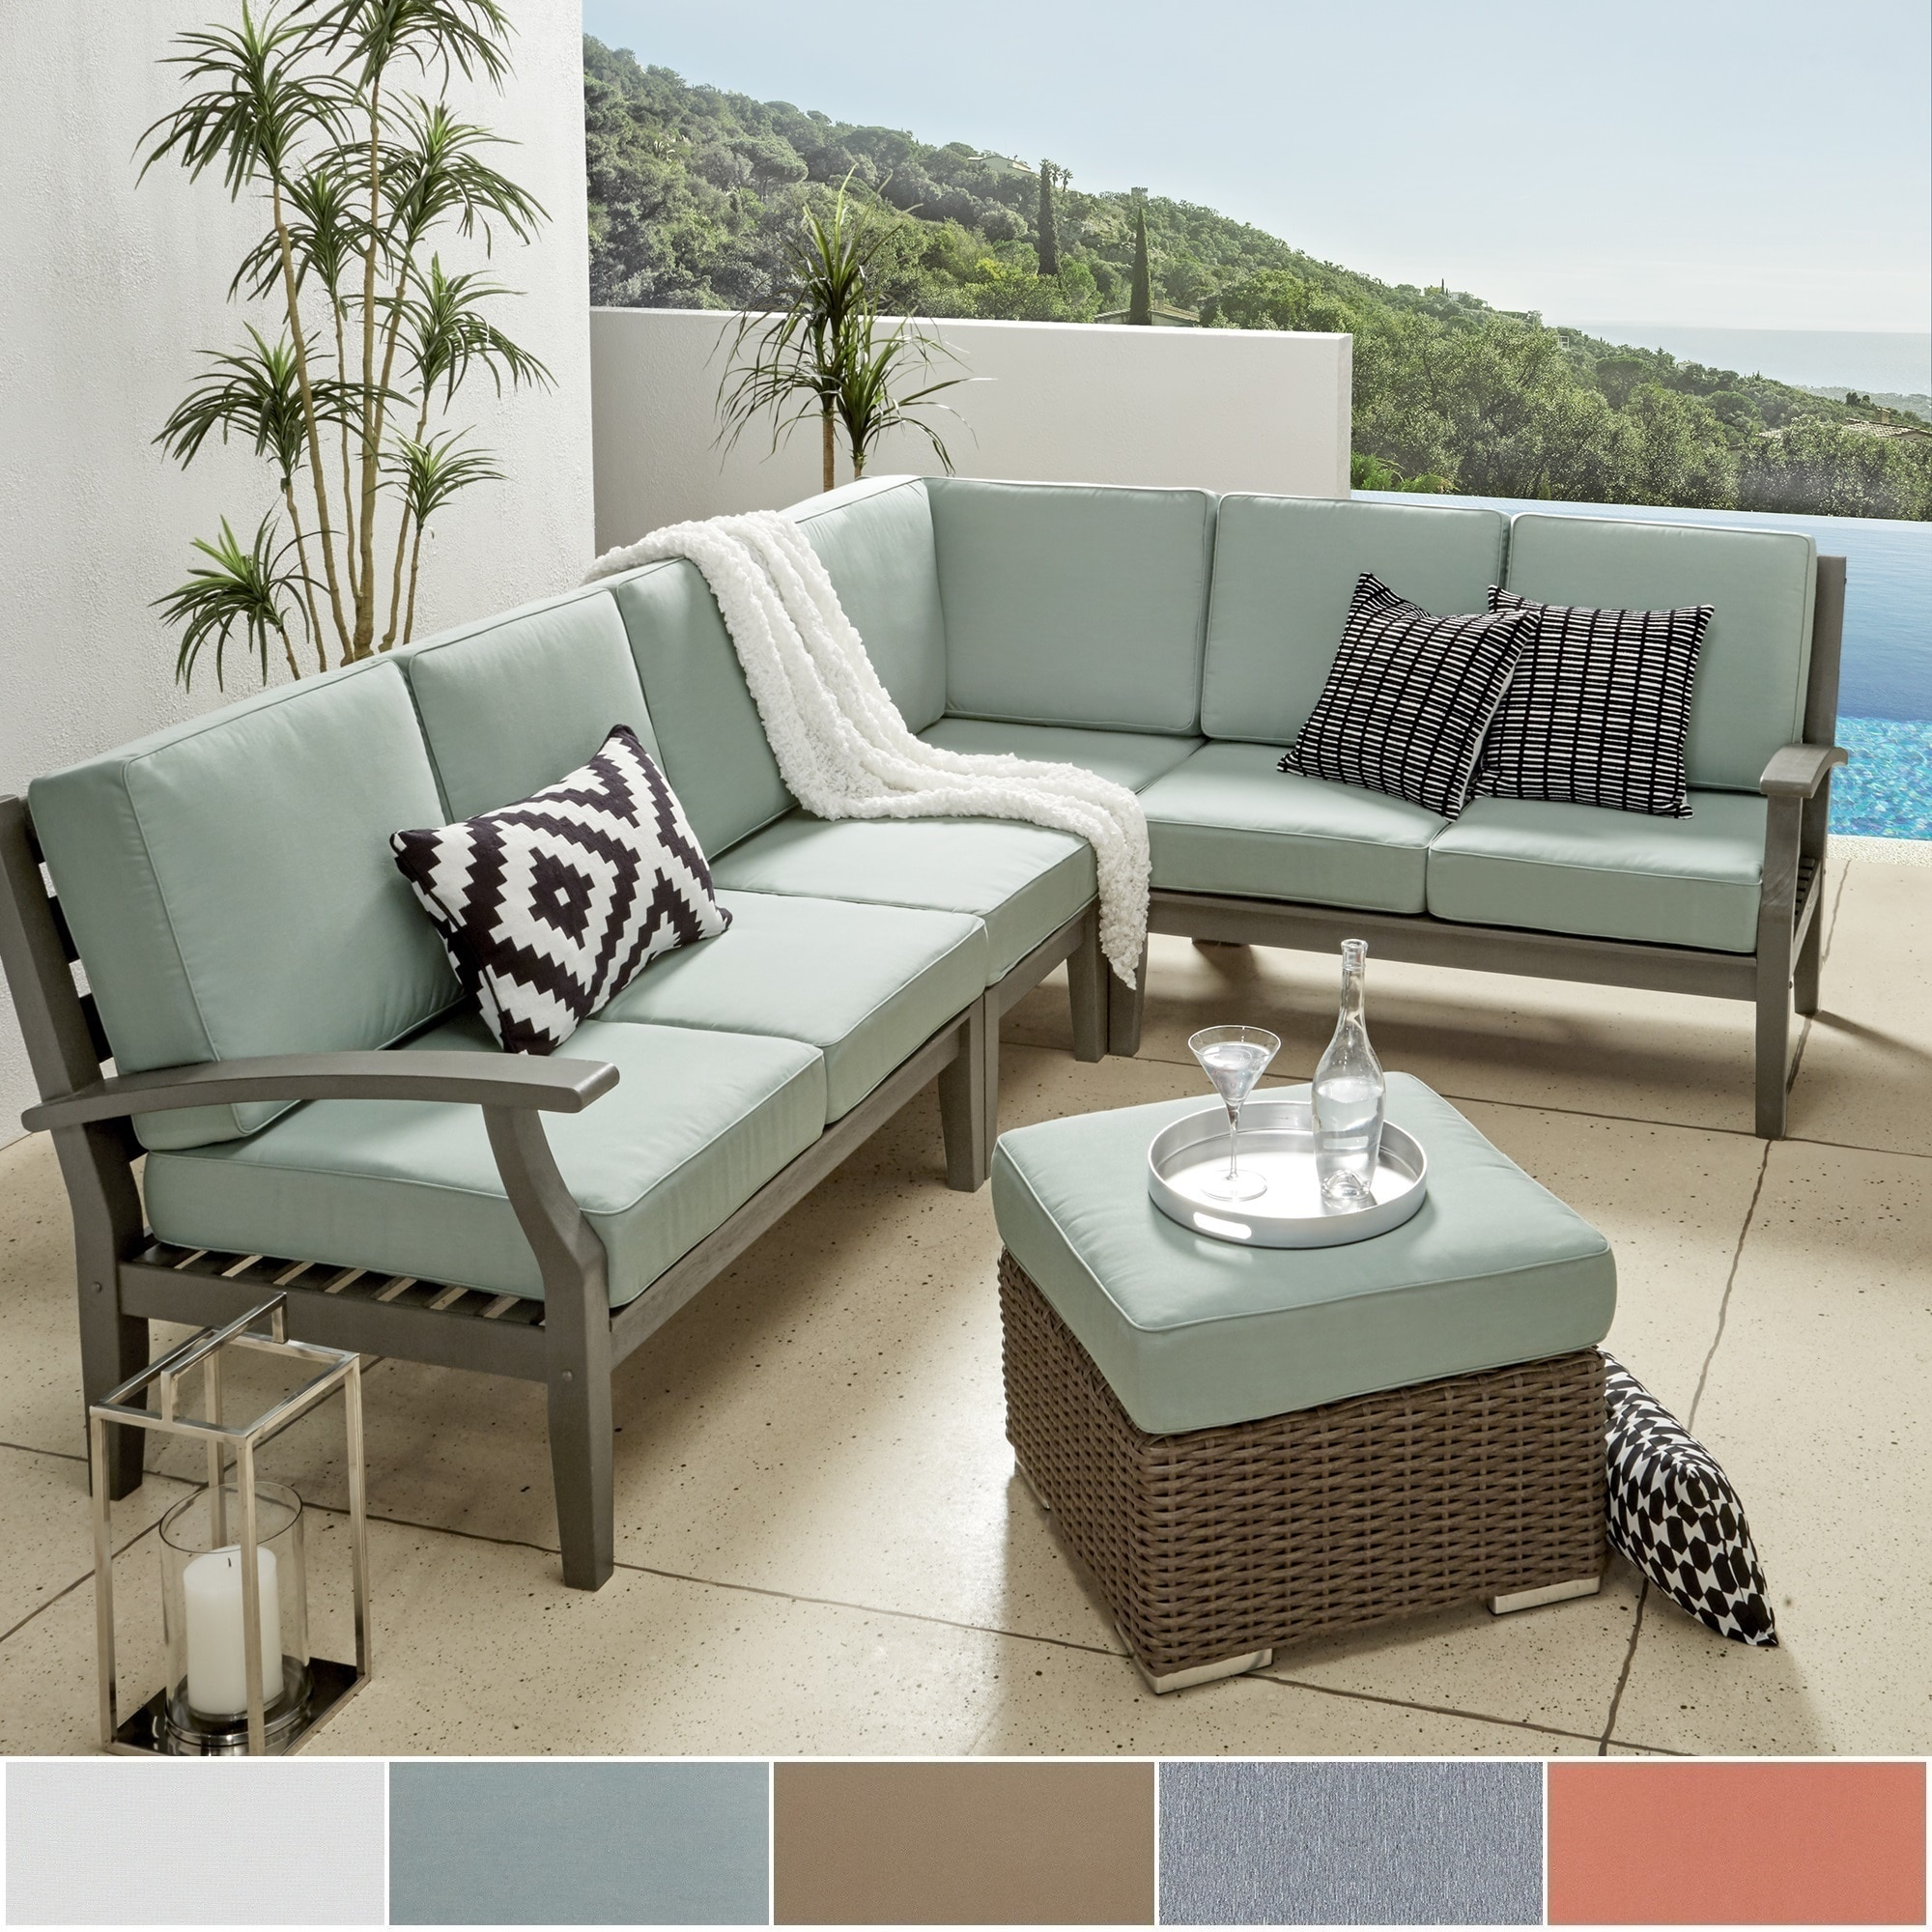 knight itm acacia bfcf wood by cushions outdoor sofa sectional with details about set piece oana christopher home